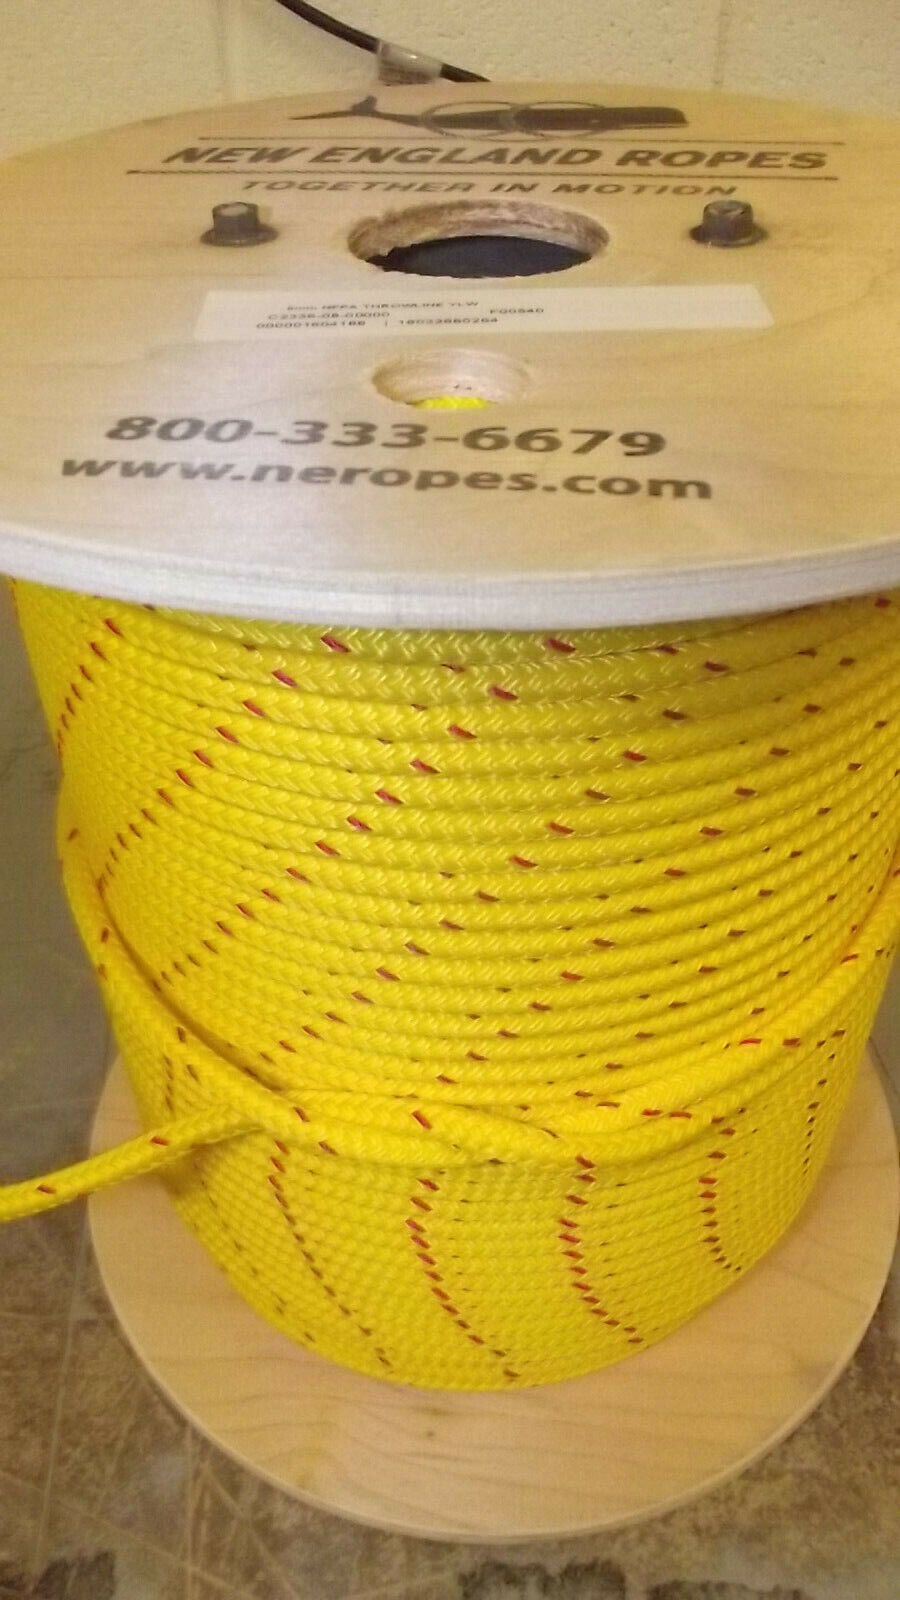 5 16  (8mm) x 540' Double Braid Dyneema Rope Water Rescue Rope, NFPA Throwline